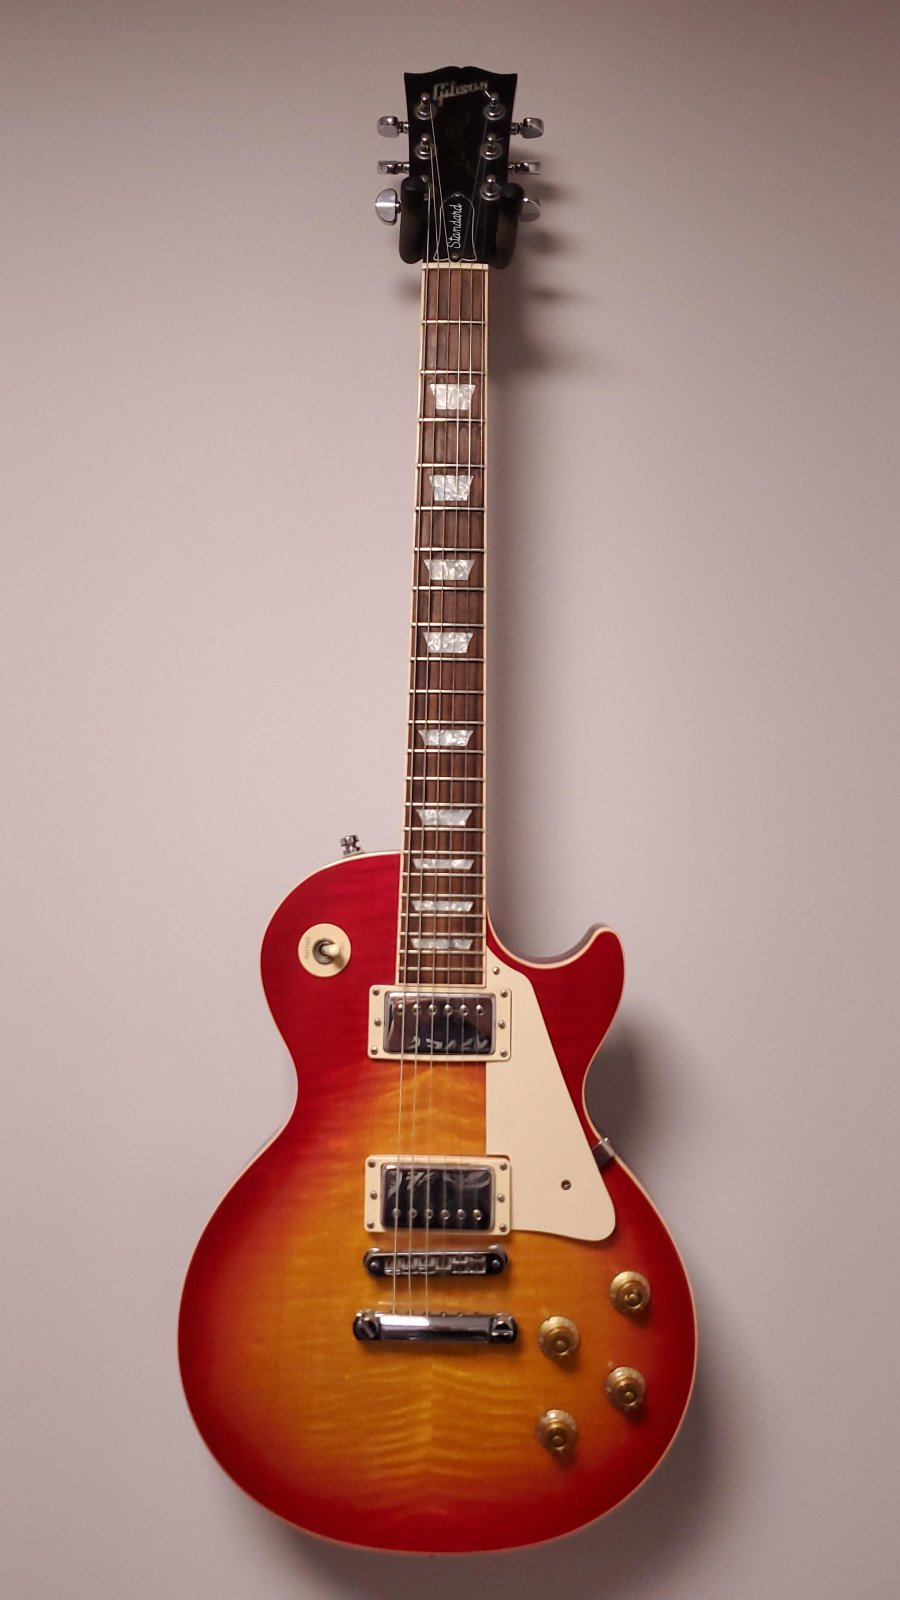 (USED) Gibson Les Paul 2001 AA Flame Top with Case and Upgraded Capacitor